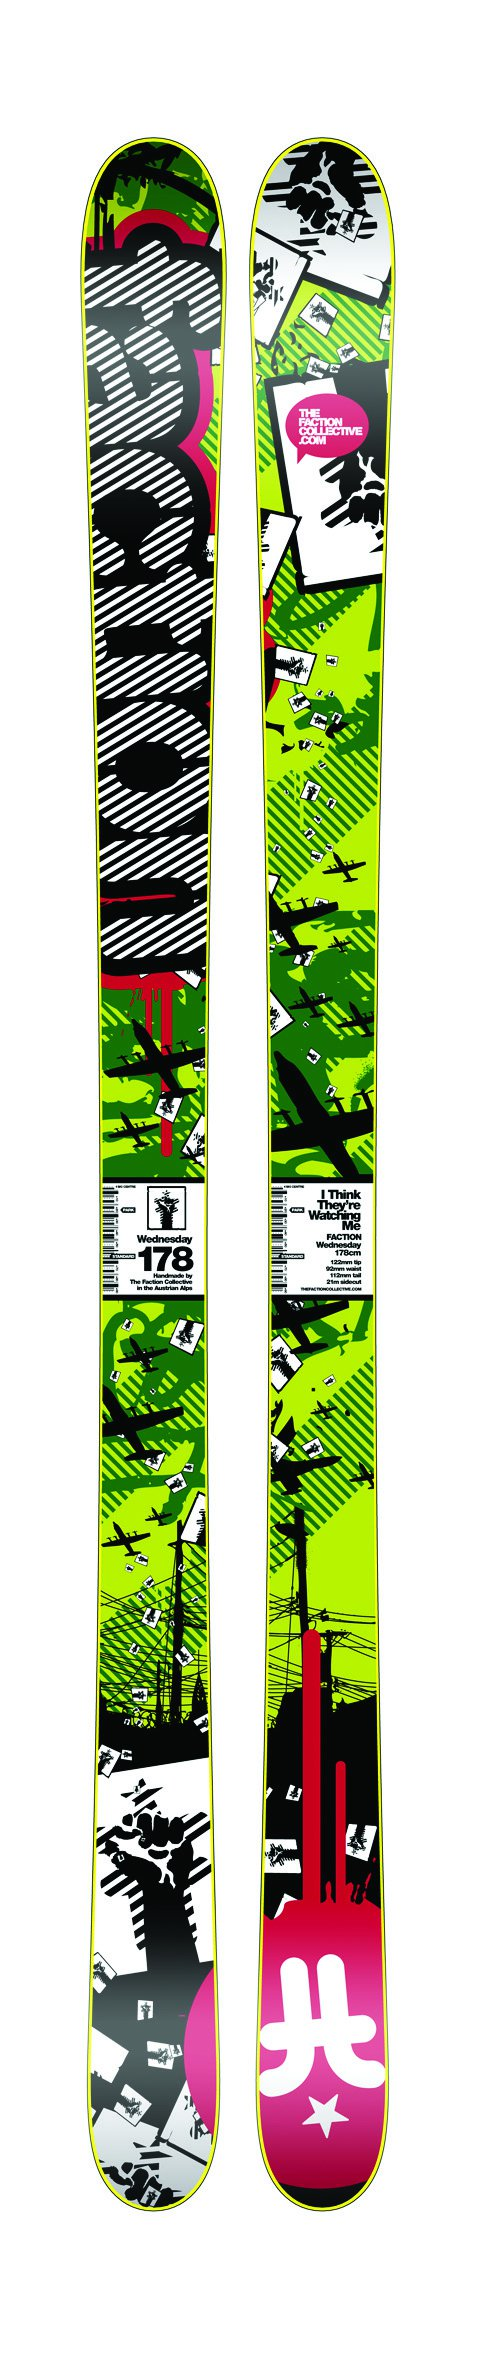 The Faction line of skis for 08/09 - 5 of 5